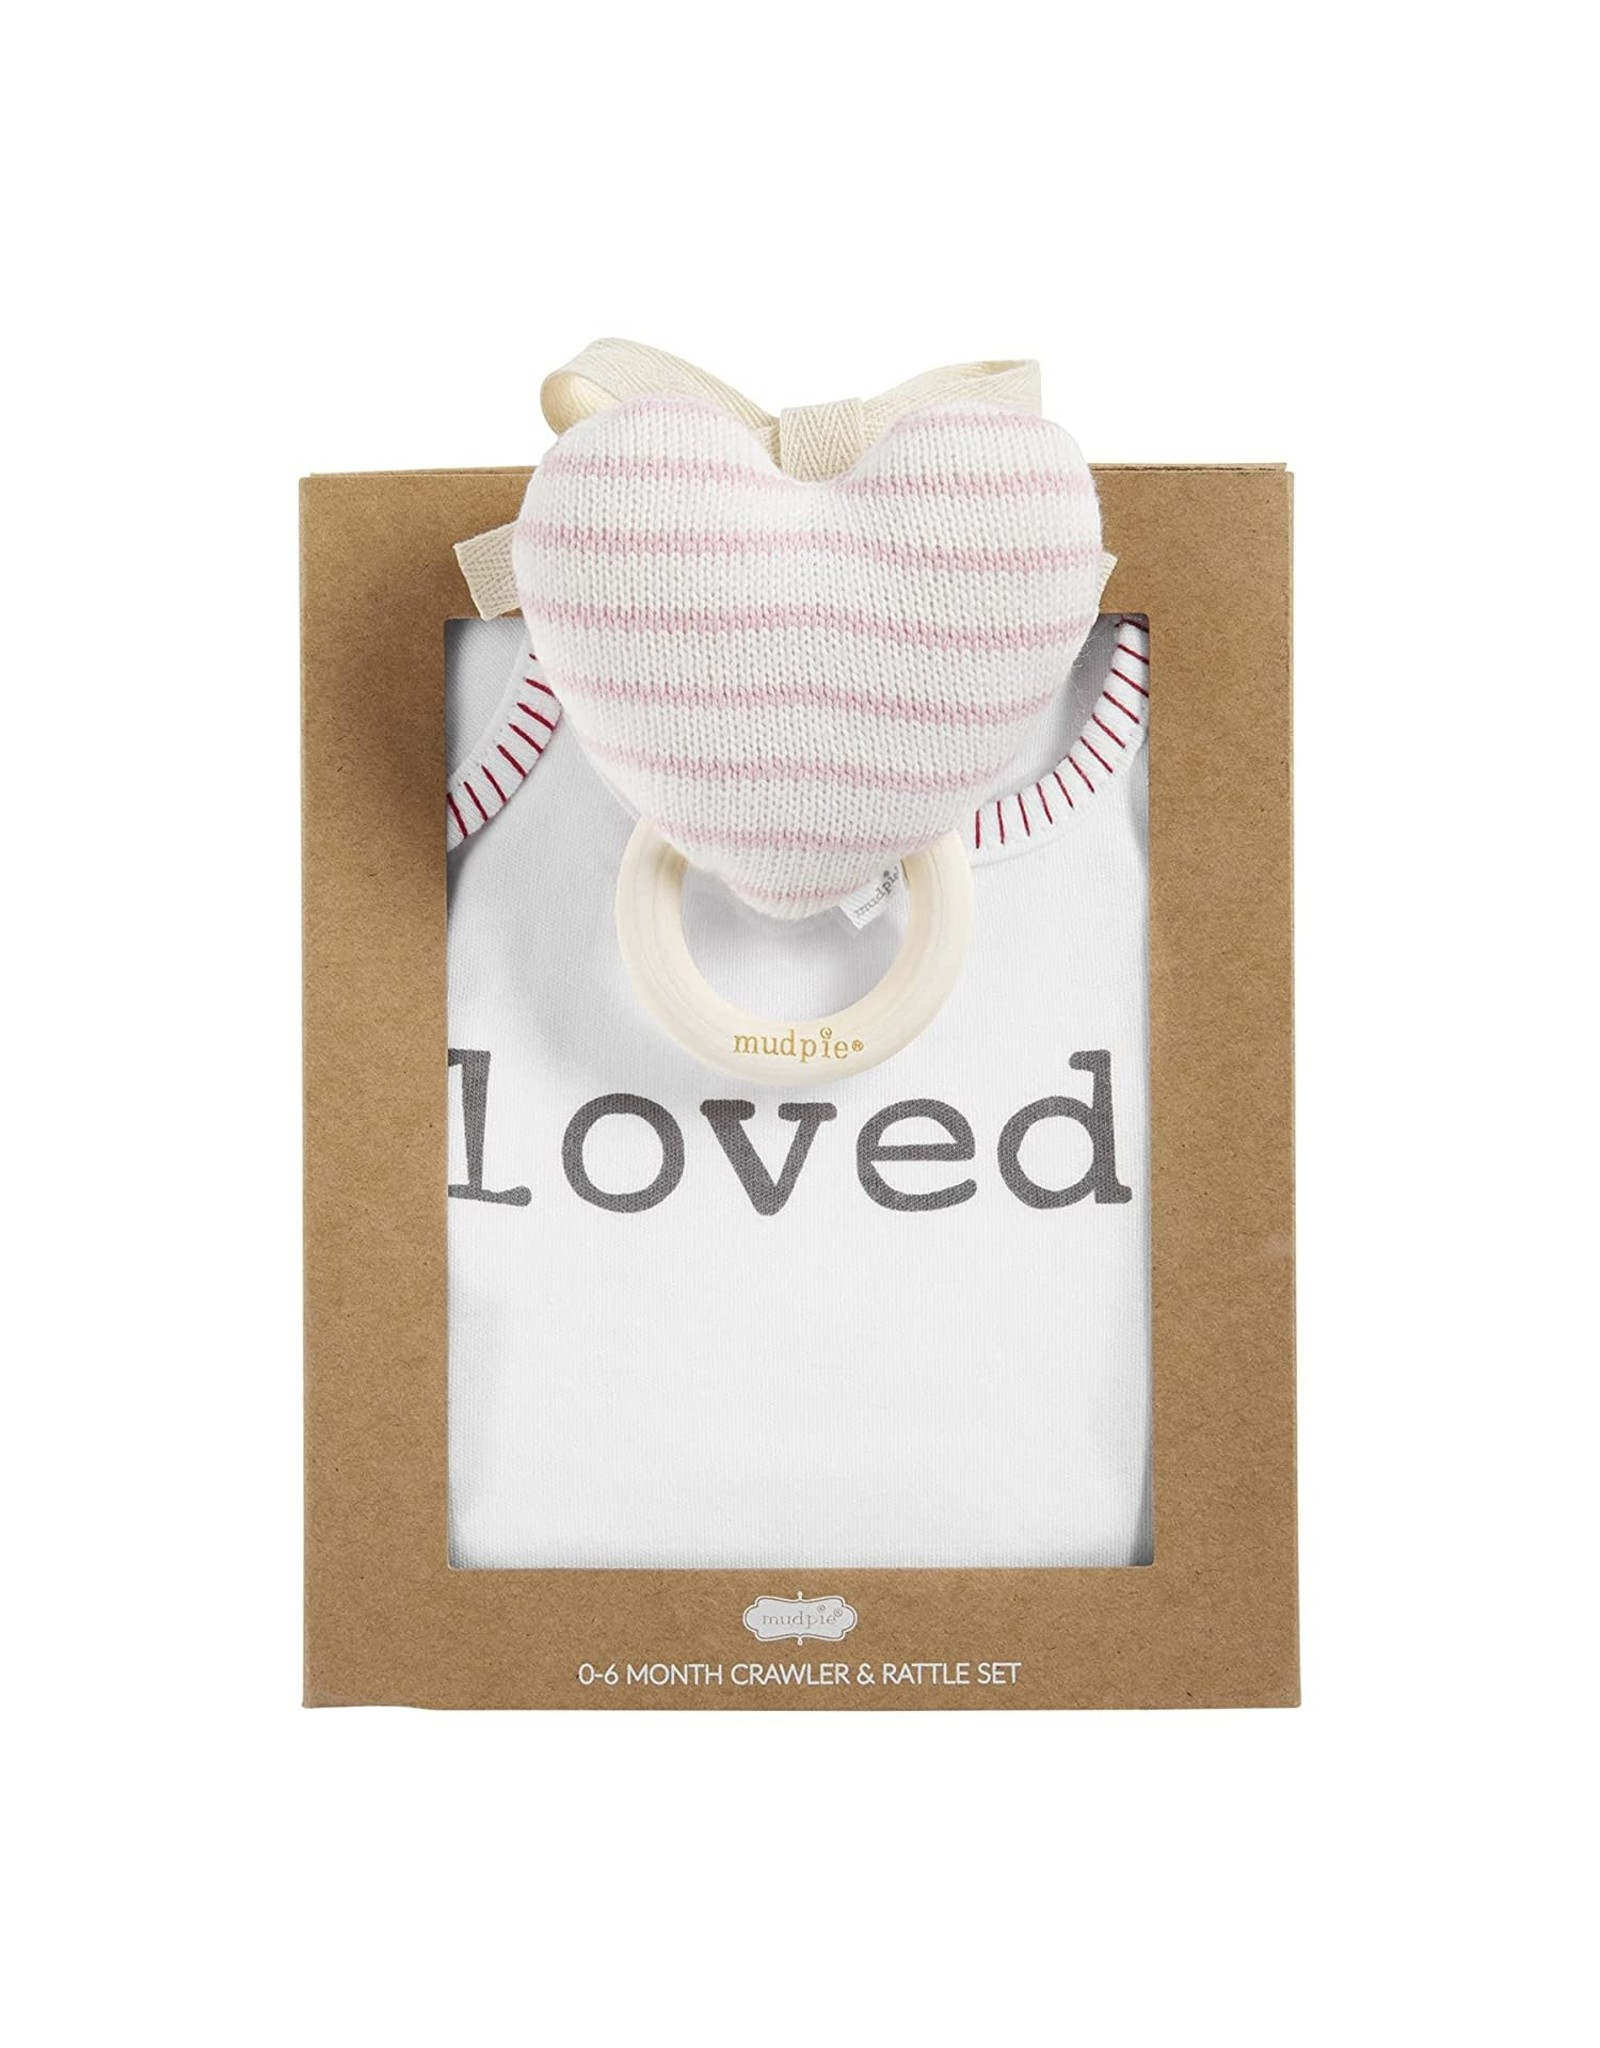 Mud Pie Baby Gifts Loved Crawler And Rattle Set 0-6 Month